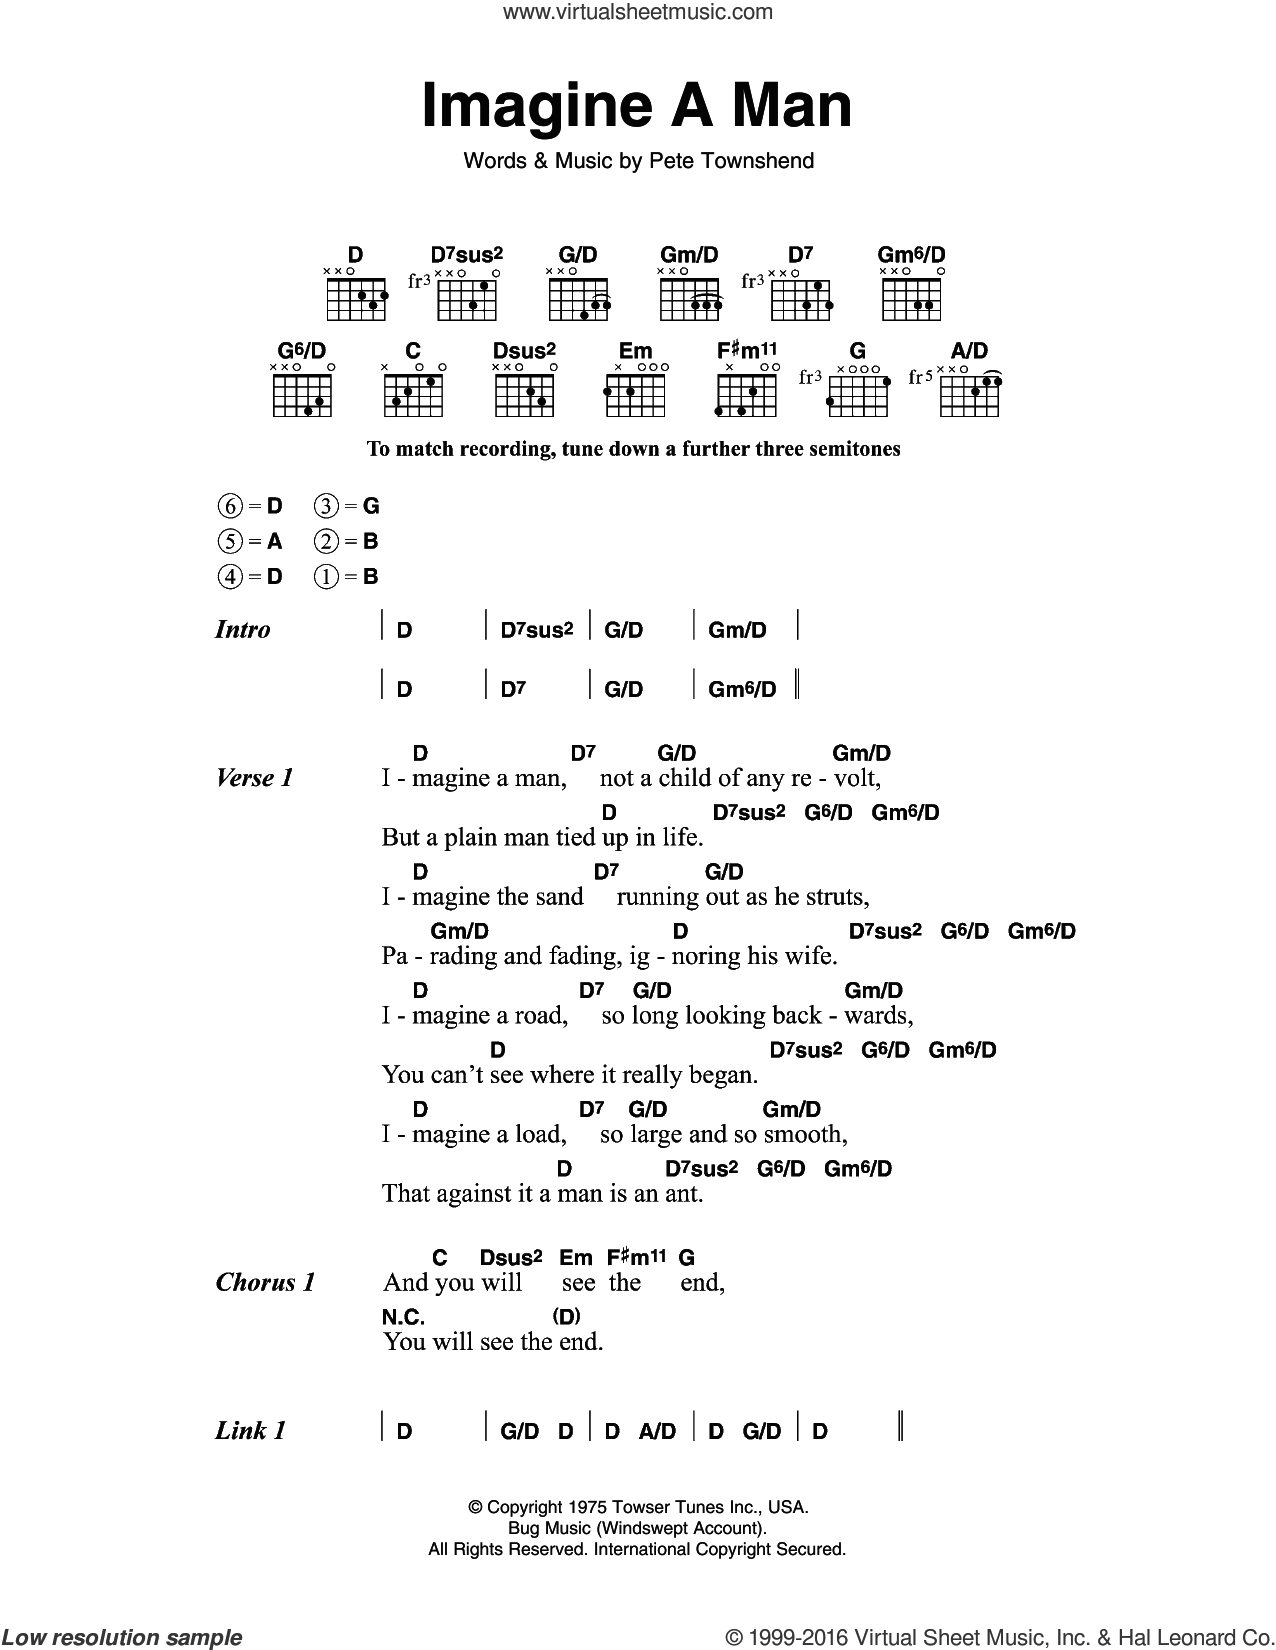 Imagine A Man sheet music for guitar (chords) by Pete Townshend